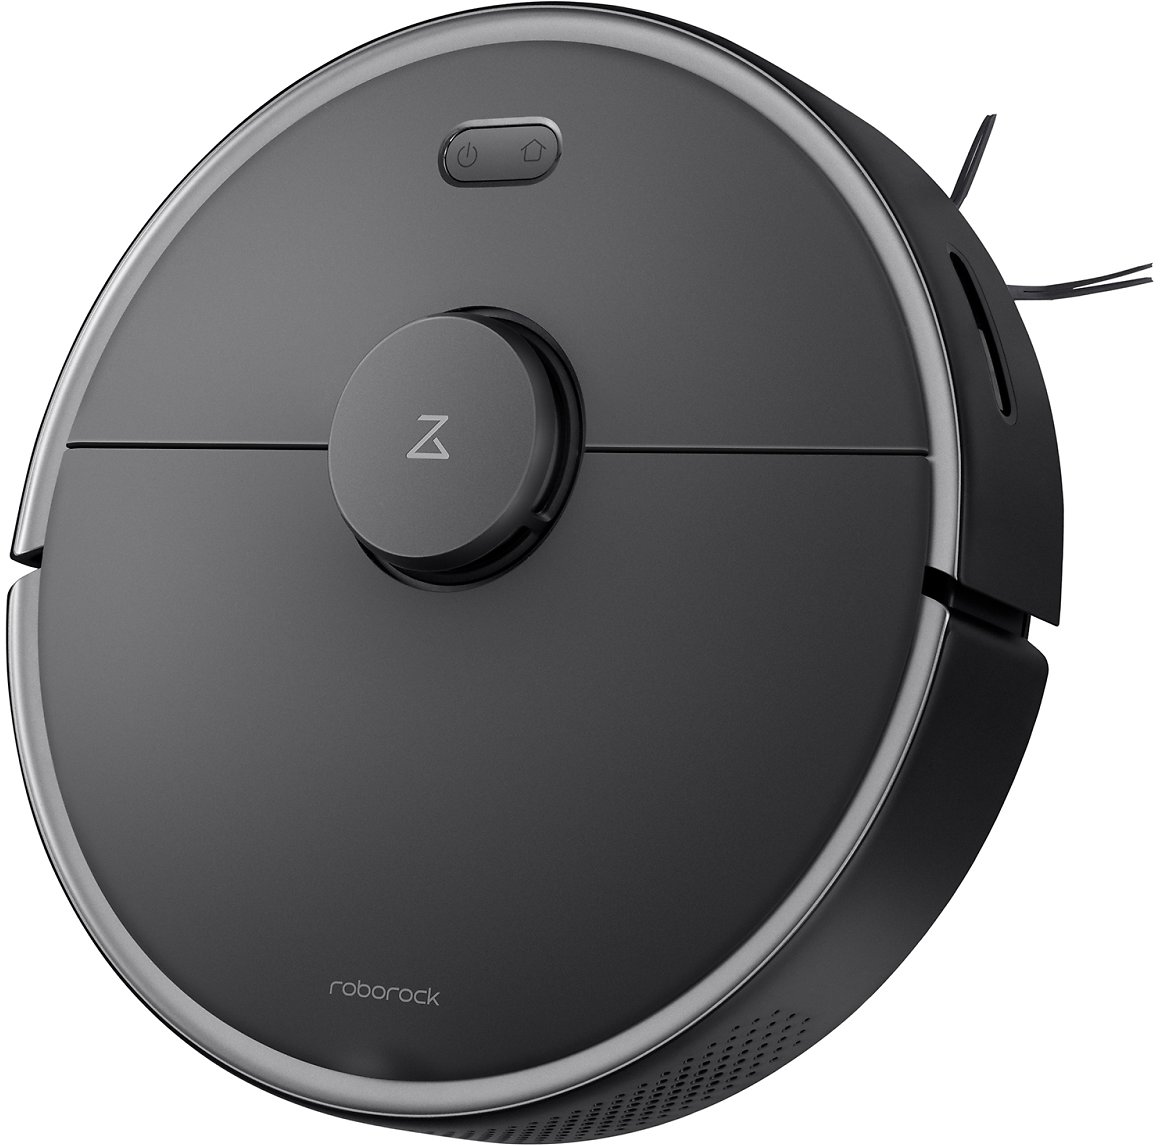 Roborock S4 Max Robot Vacuum with Lidar Navigation and Multi-Level Mapping, 2000Pa Strong Suction